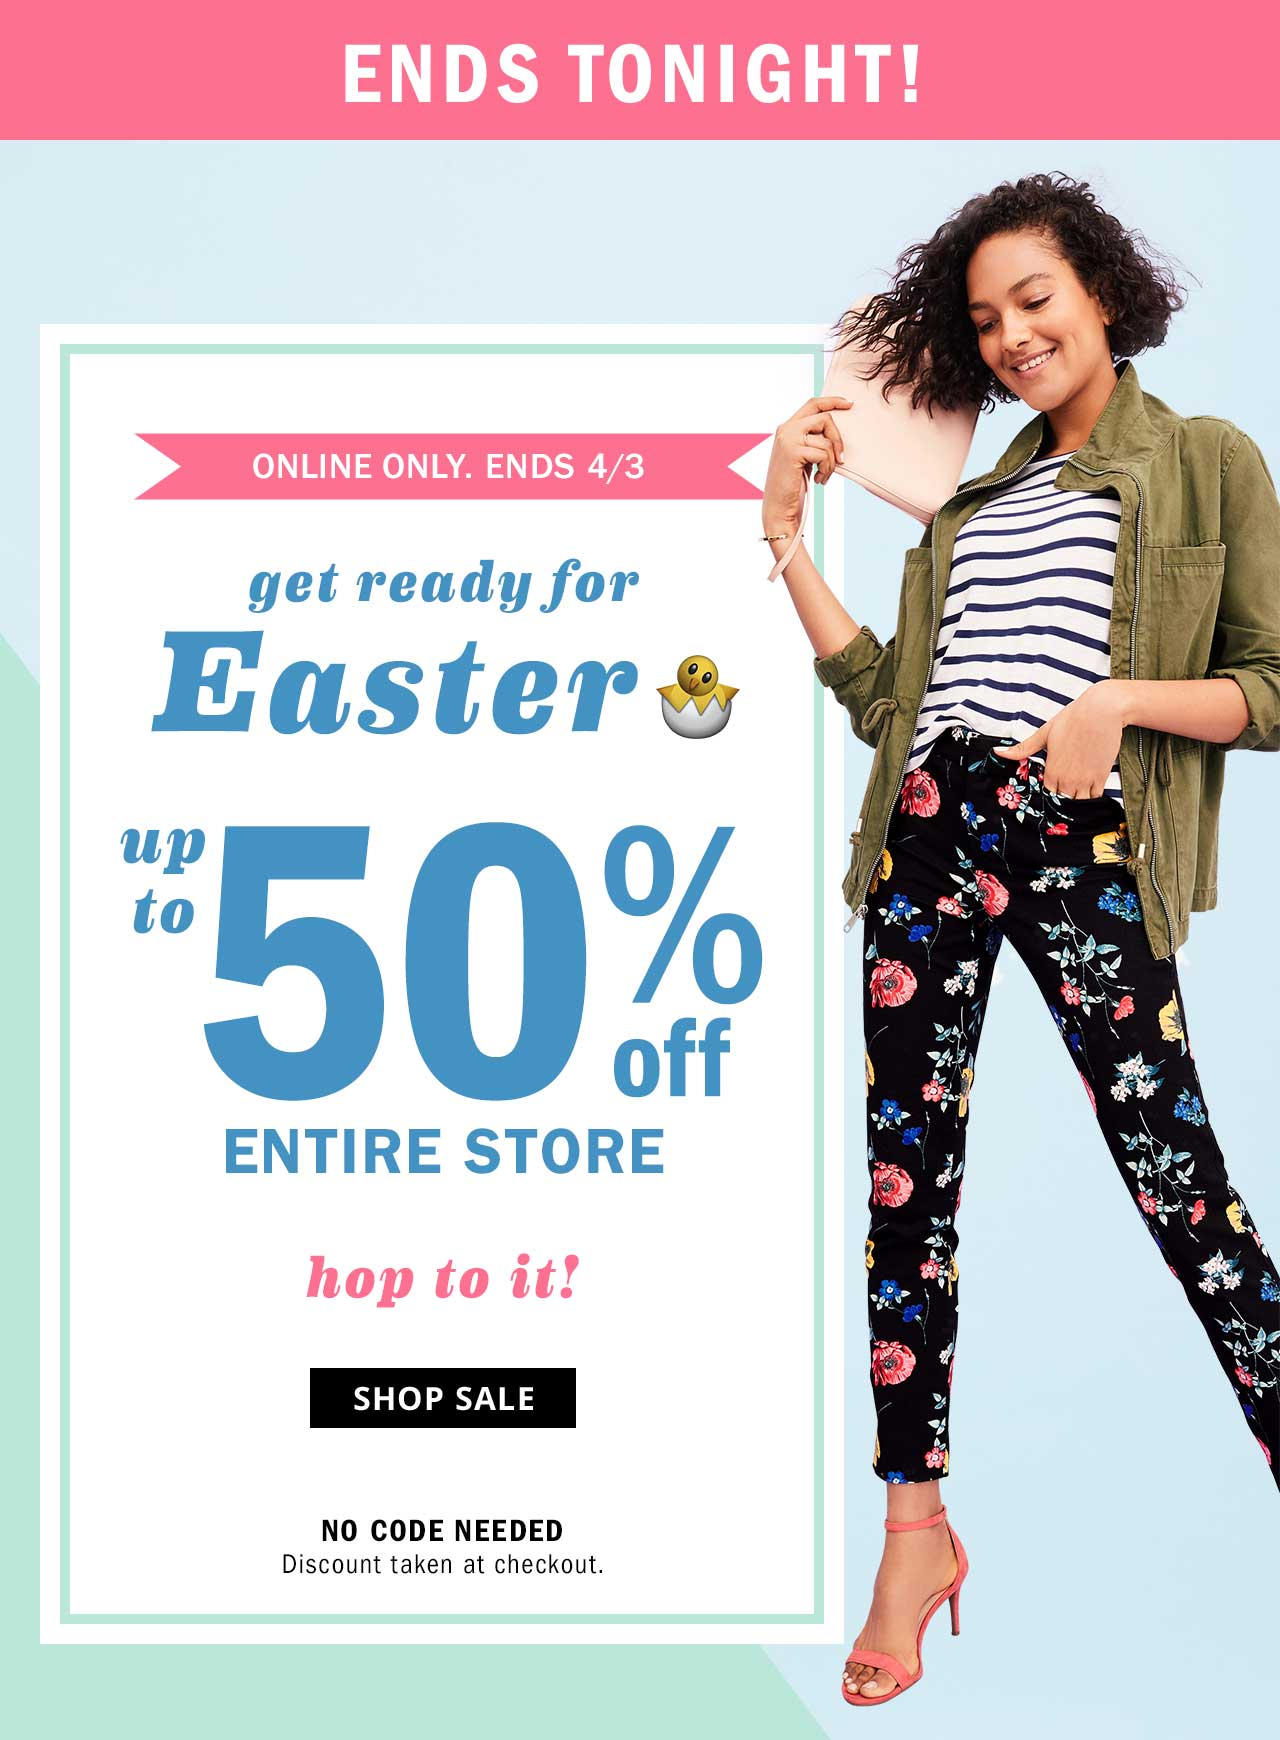 ENDS TONIGHT!   up to 50% off ENTIRE STORE   SHOP SALE